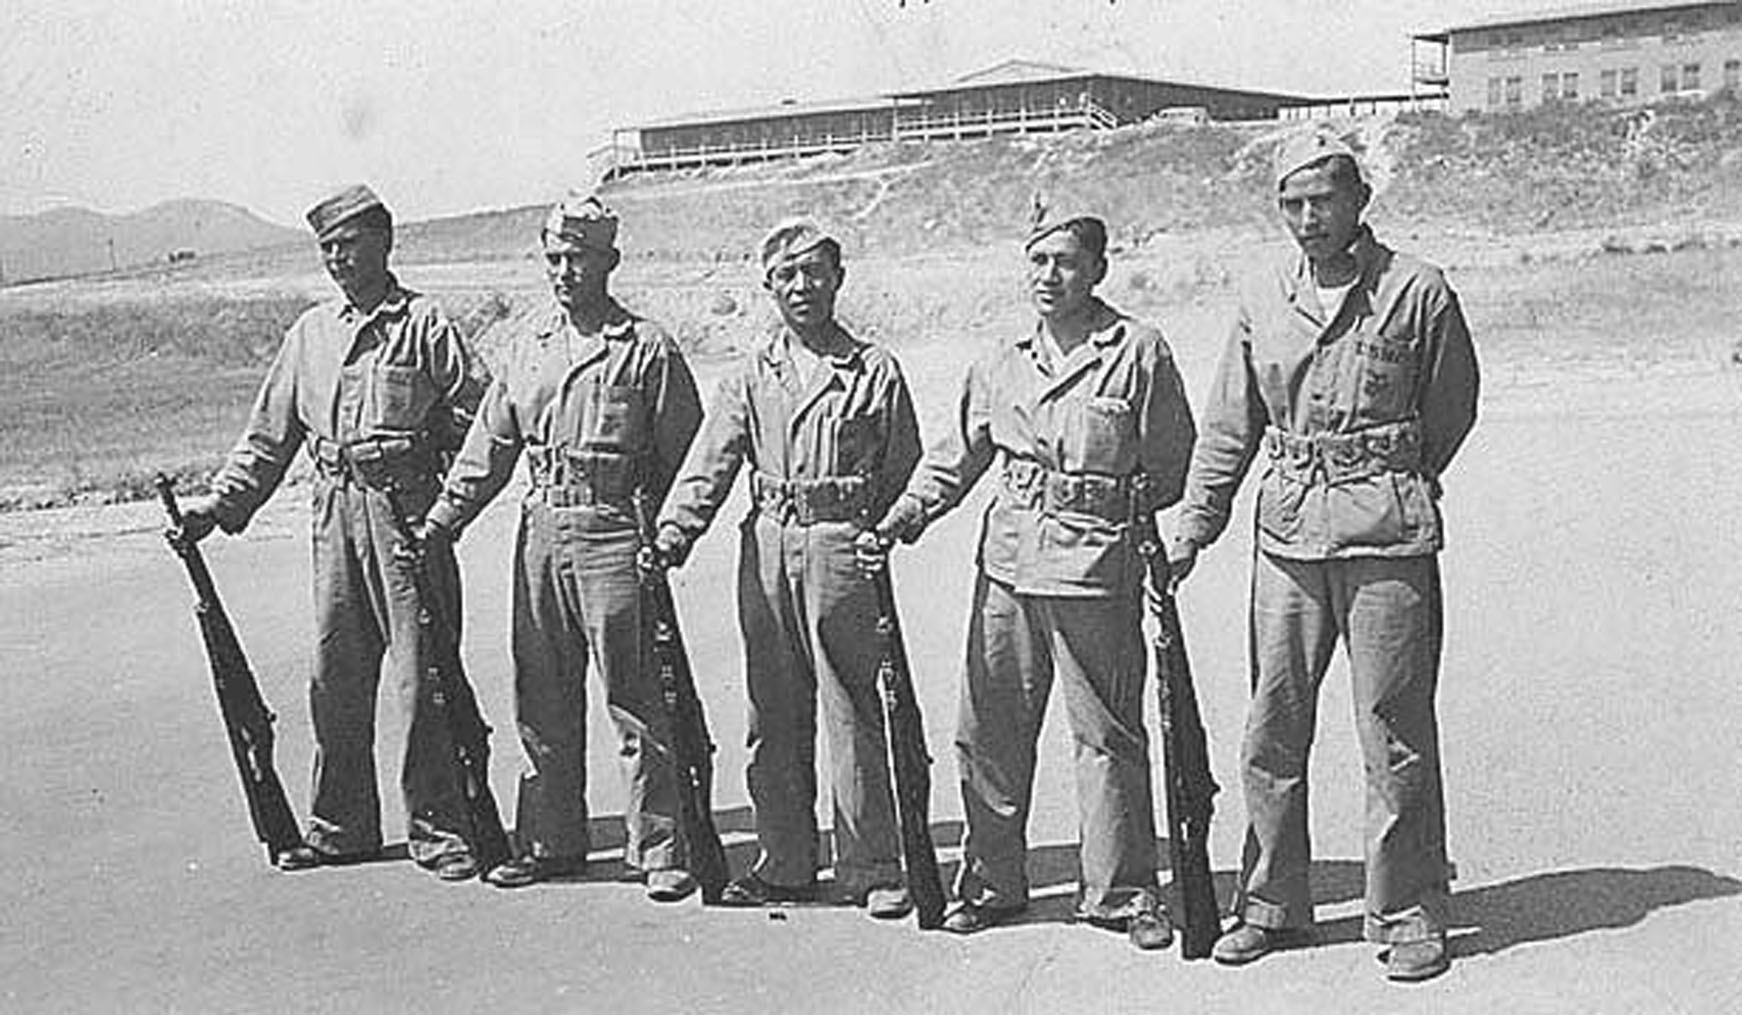 navajo code talkers of world war Navajo code talker roy hawthorne, who used his native language as an uncrackable code during world war ii, died saturday at 92, he was one of the last surviving code talkers hawthorne was 17.